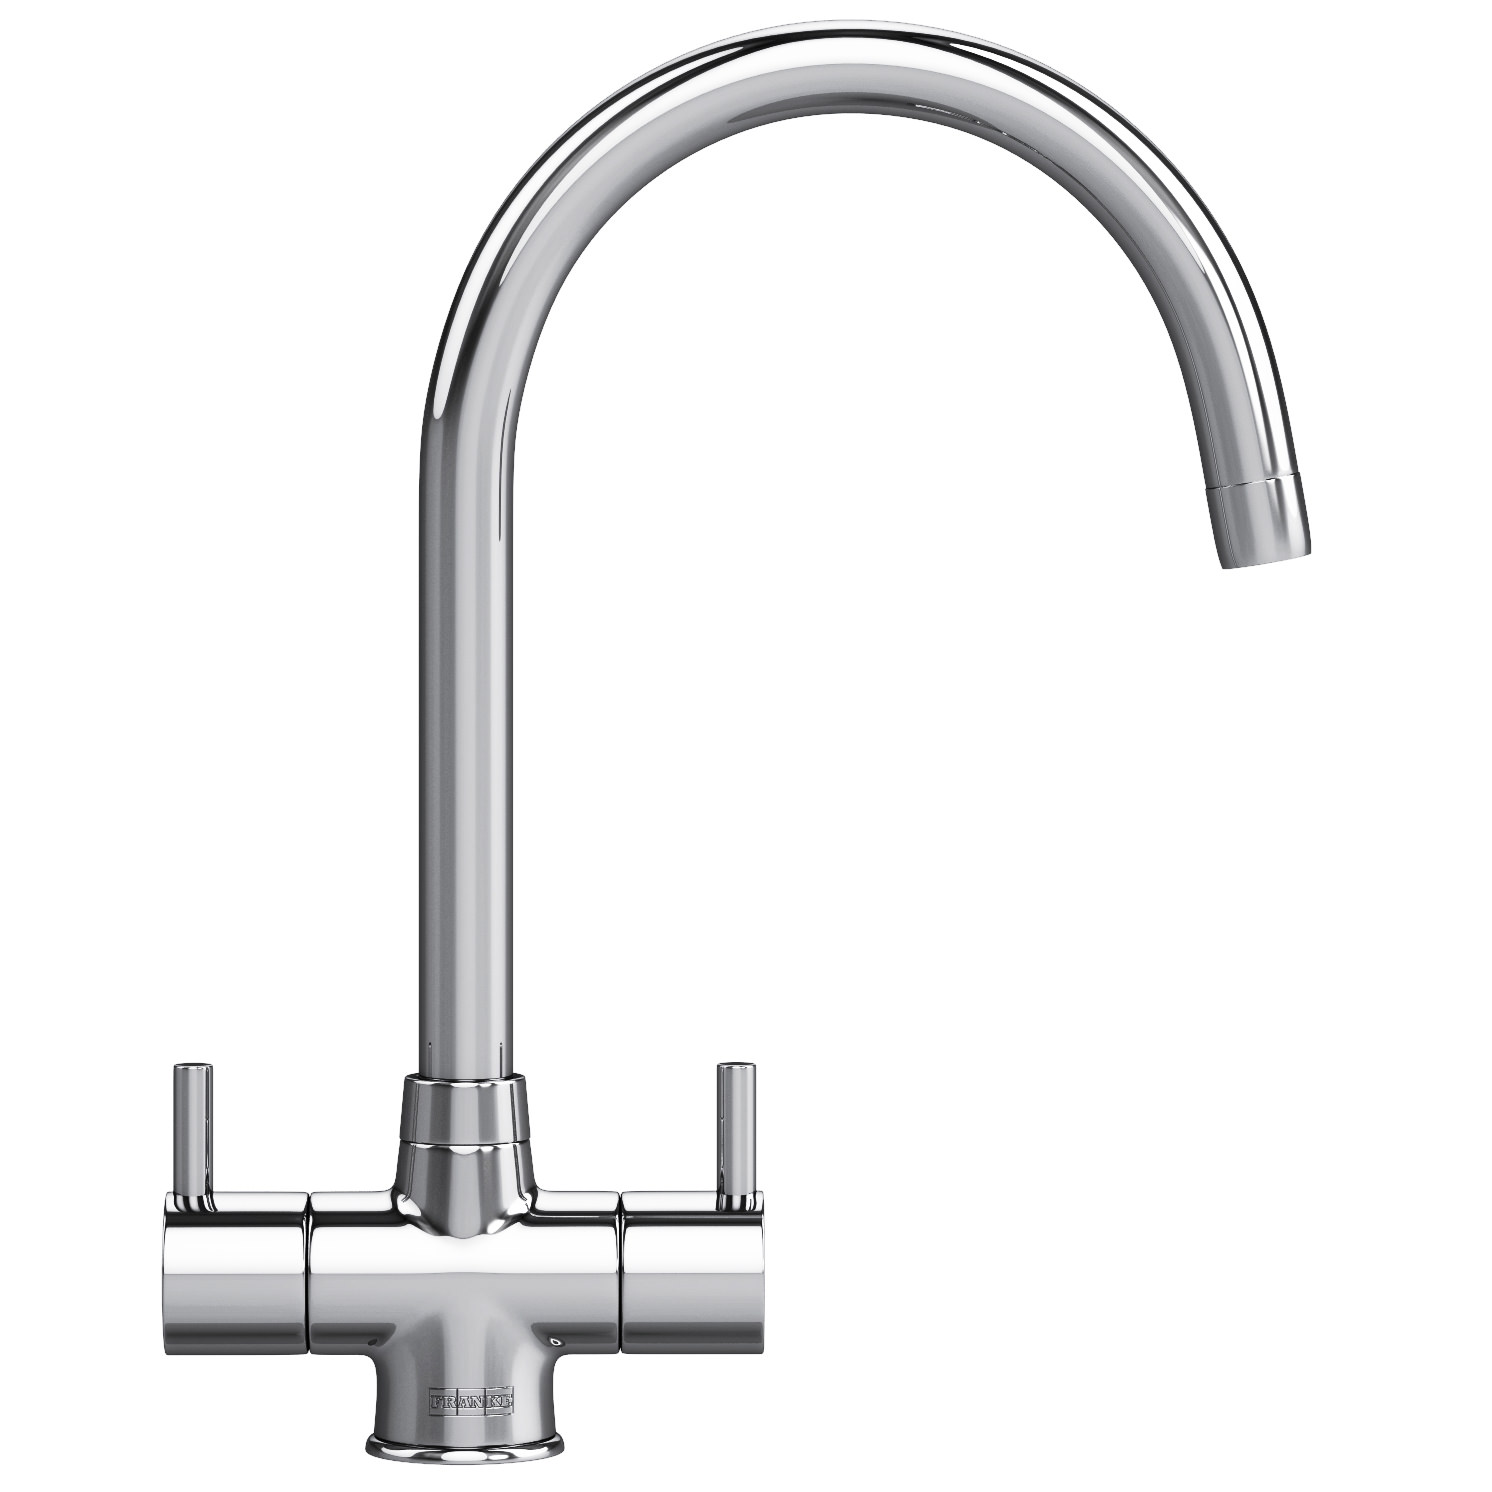 franke athena kitchen sink mixer tap chrome - Kitchen Sink Mixer Taps